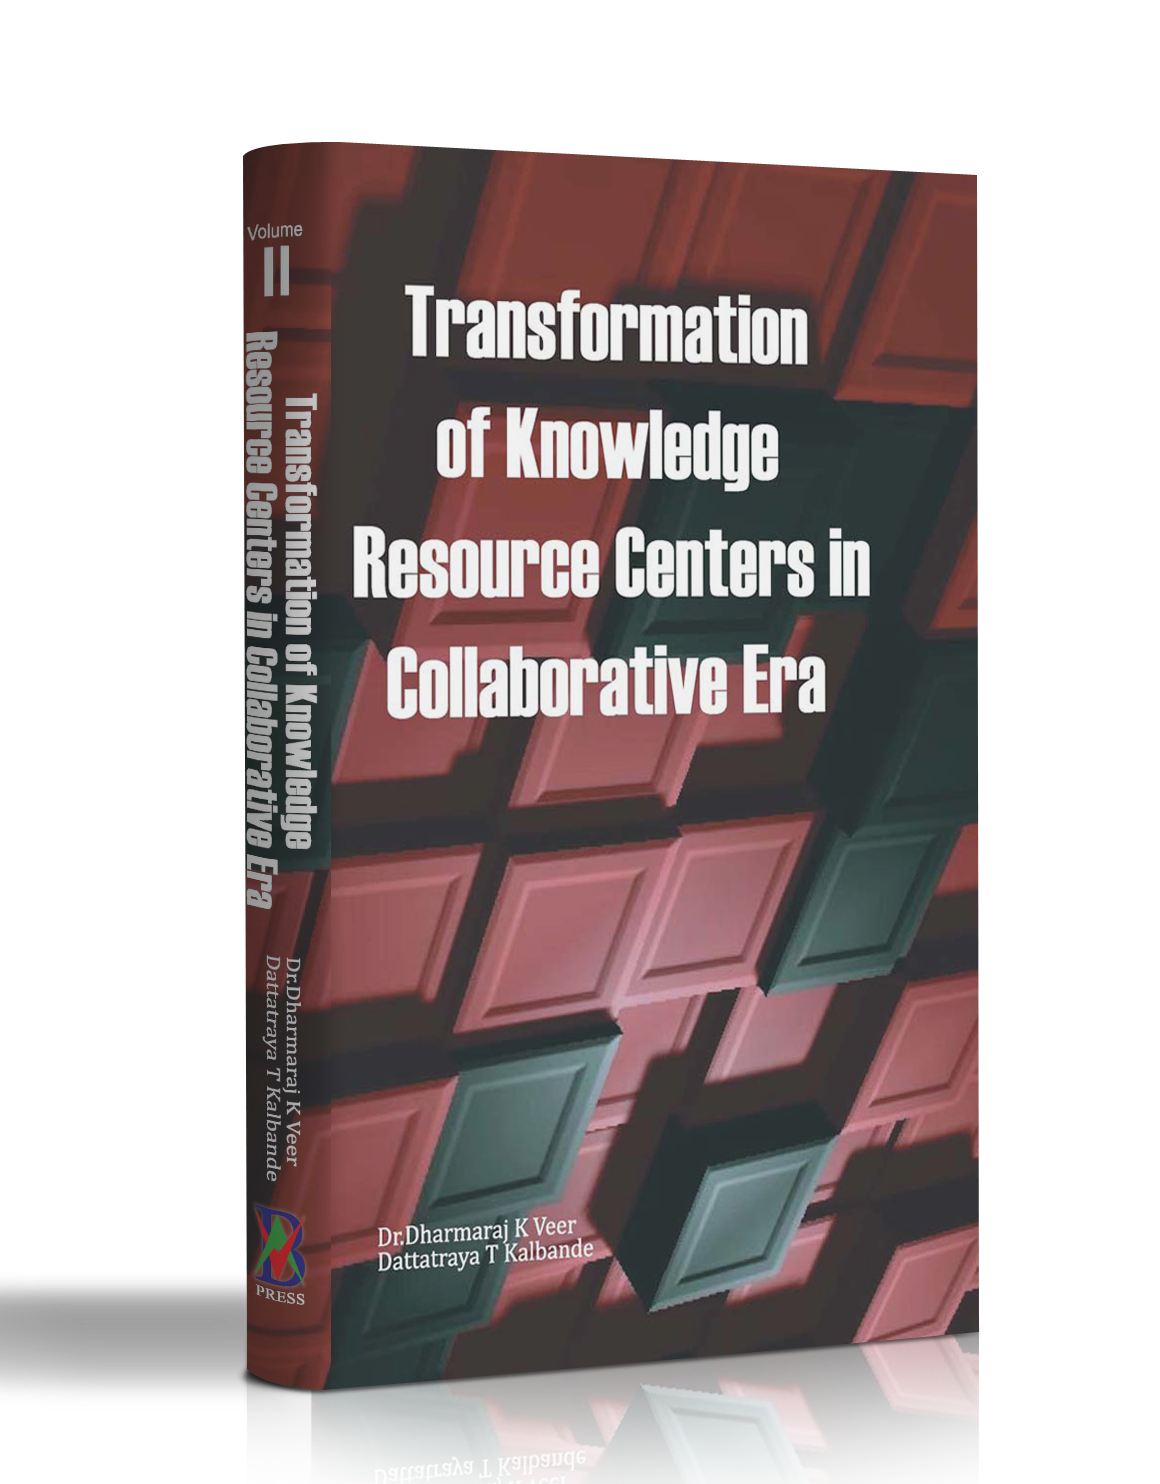 TRANSFORMATION OF KNOWLEDGE RESOURCE CENTERS IN COLLABORATIVE ERA 2 VOL SET